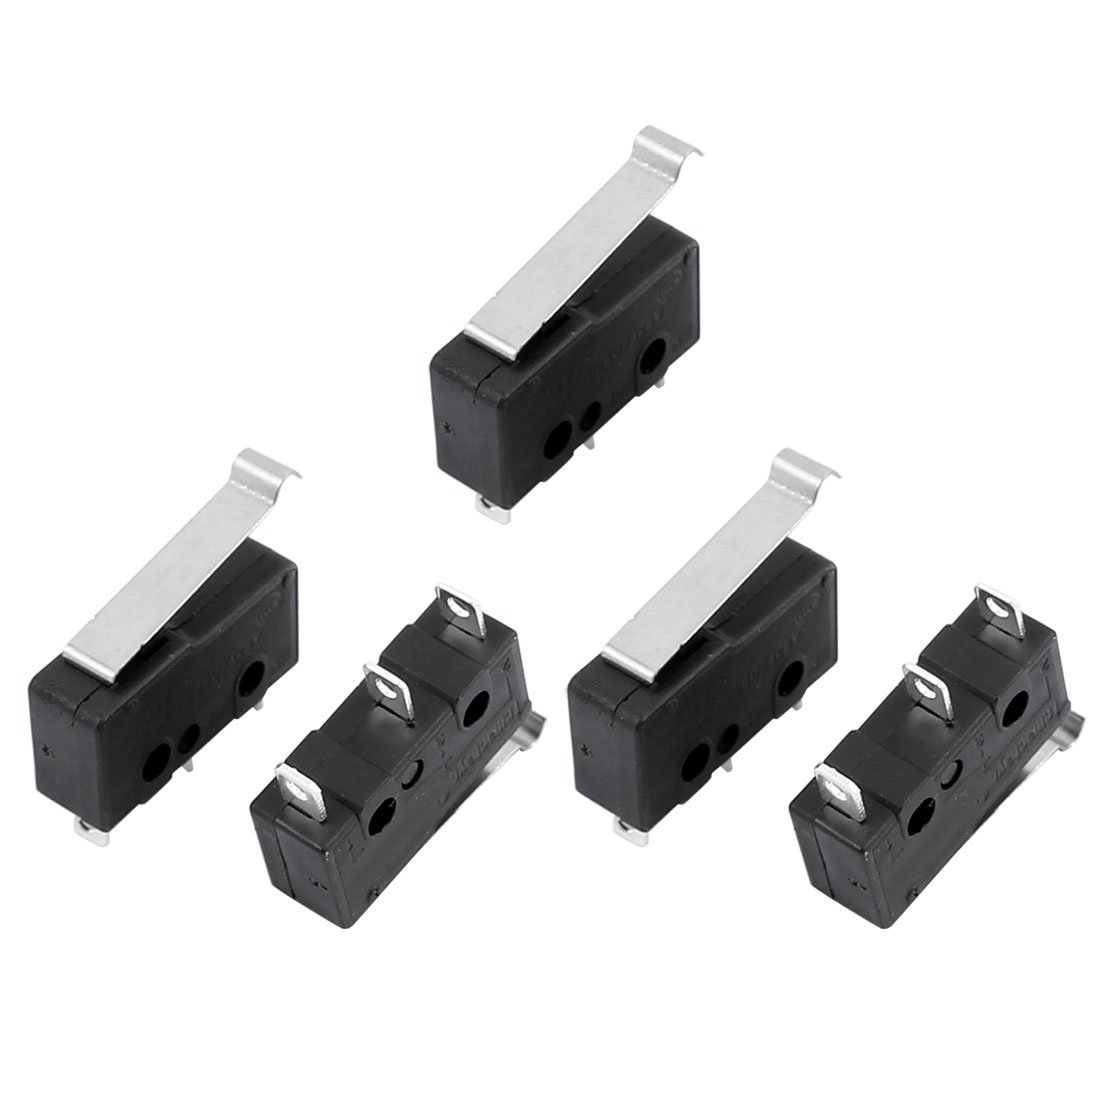 uxcell 5Pcs AC250/125V 3A Micro Limit Switch SPDT 3 Terminals Momentary 19mm Lever Arm Black KW12-5